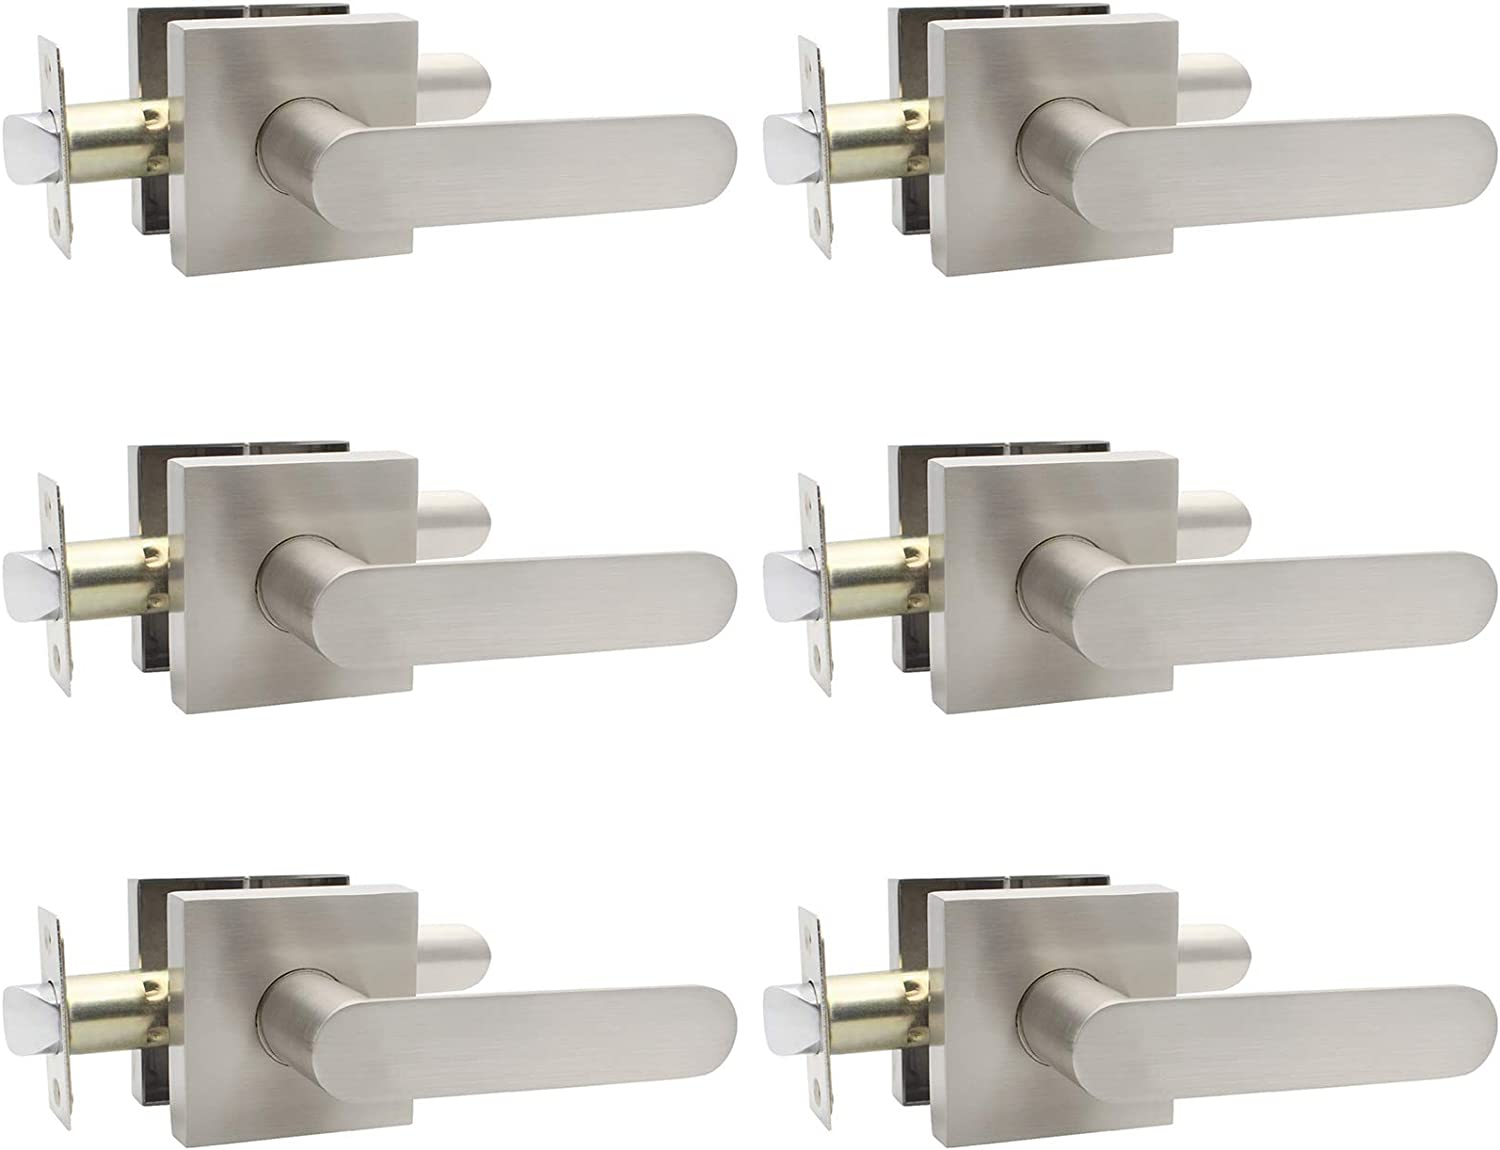 Home or Office Use Heavy Duty Reversible for Right /& Left Sided Doors Satin Nickel Finish Square Keyless Lever Set for Hallway//Closets 6 Pack Passage Lever Door Handle Without Keys